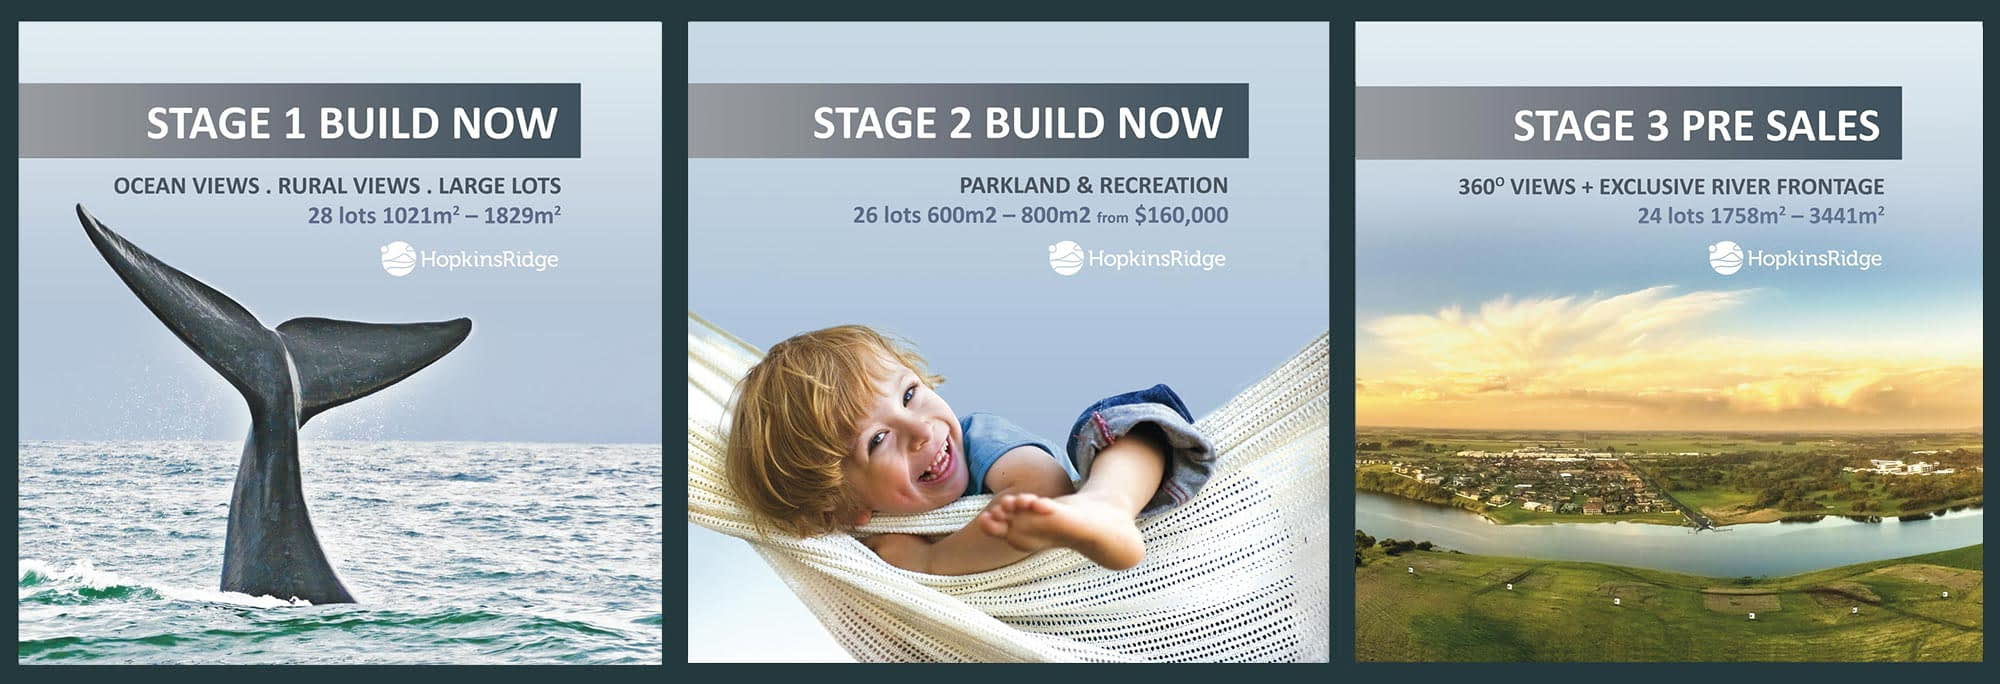 Hopkins Ridge selling stages